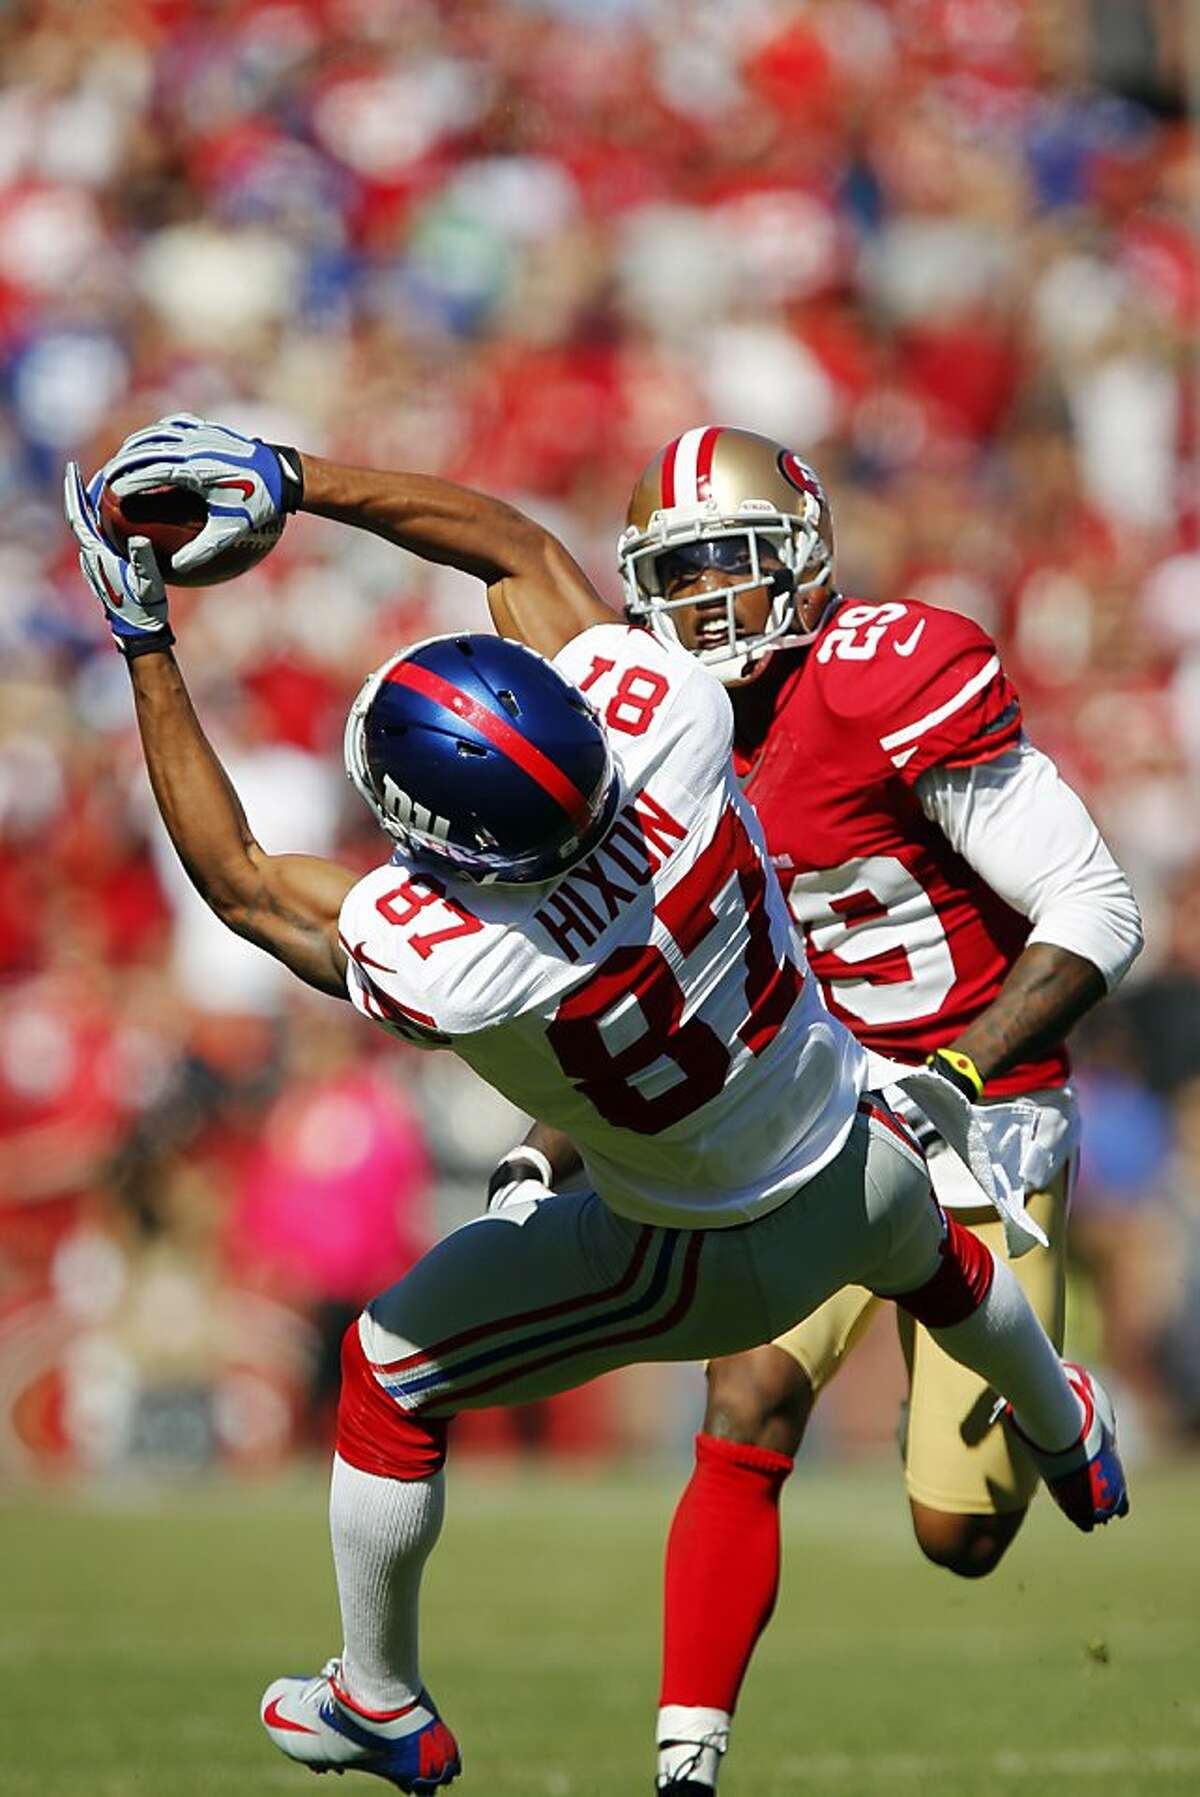 SAN FRANCISCO, CA - OCTOBER 14: Wide receiver Domenik Hixon #87 of the New York Giants pulls in a 39-yard catch against cornerback Chris Culliver #29 of the San Francisco 49ers in the second quarter on October 14, 2012 at Candlestick Park in San Francisco, California. (Photo by Brian Bahr/Getty Images)